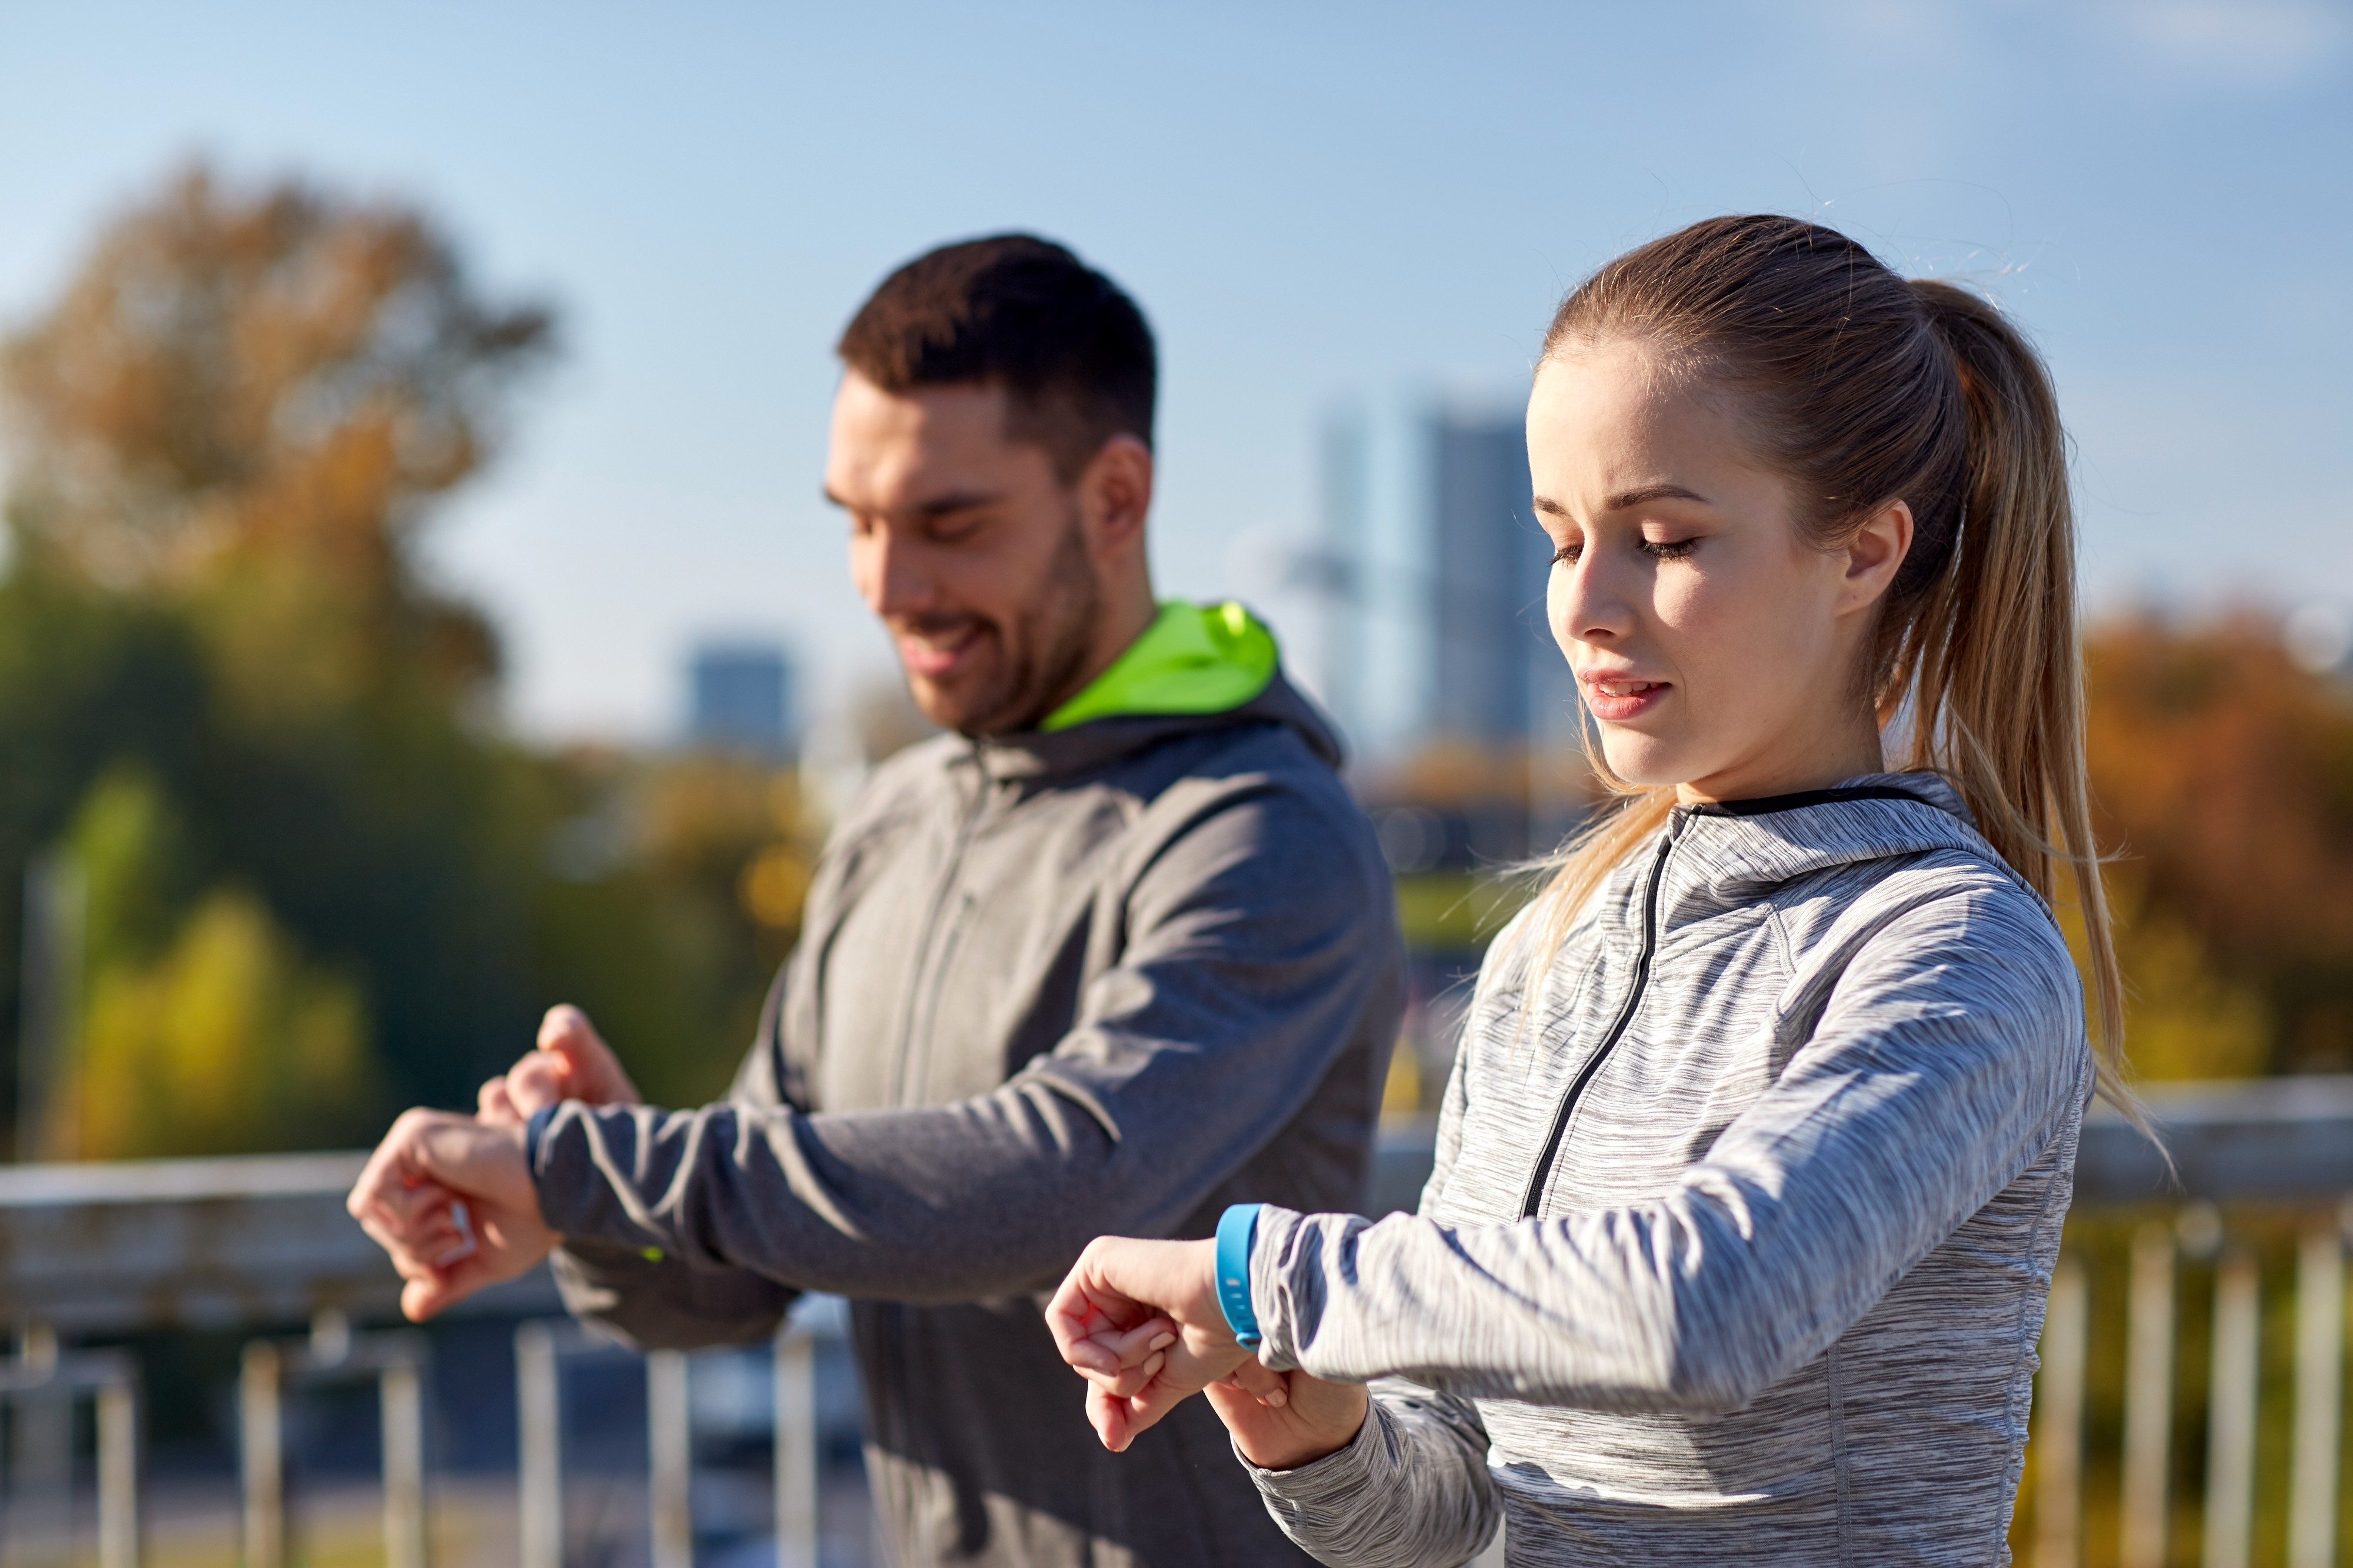 A fitness band needs to be programmed with the right goals